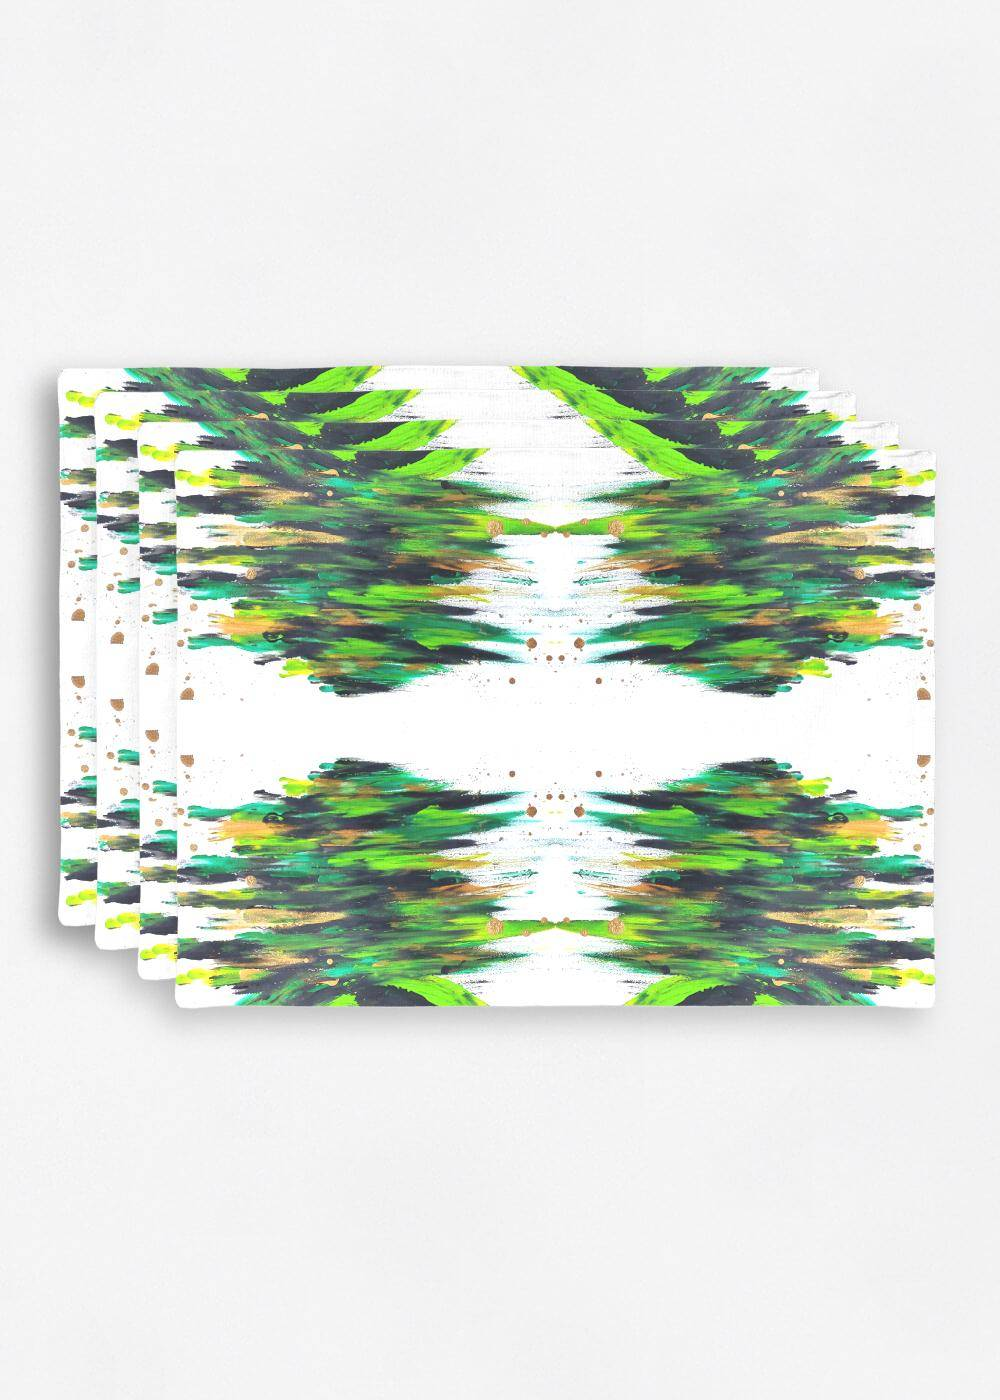 VIDA Placemat Set - Love Sees No Boundaries in Green/White/Yellow by VIDA Original Artist  - Size: Set of 4